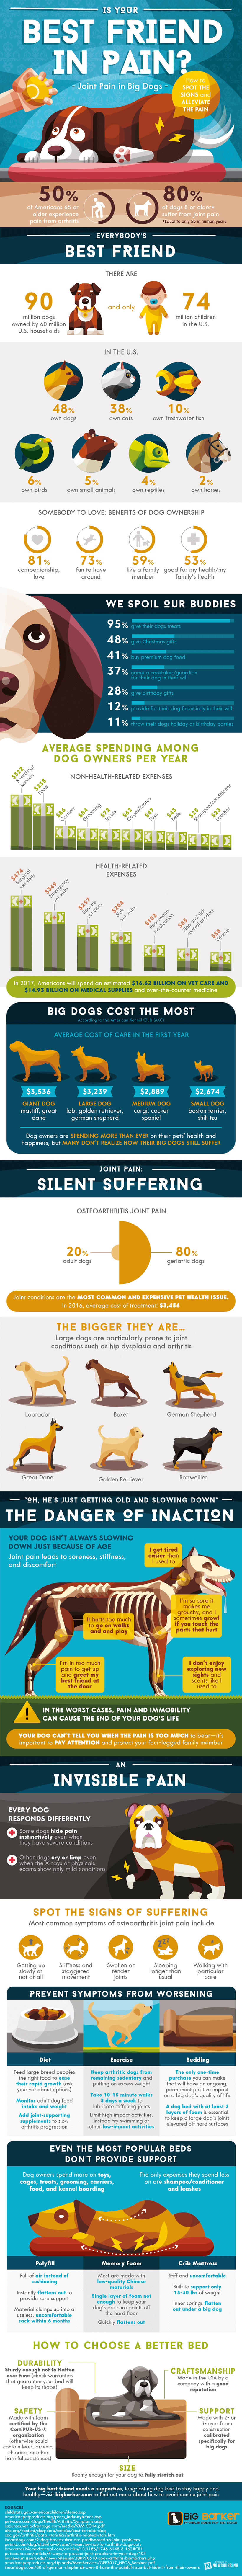 joint pain in big dogs infographic